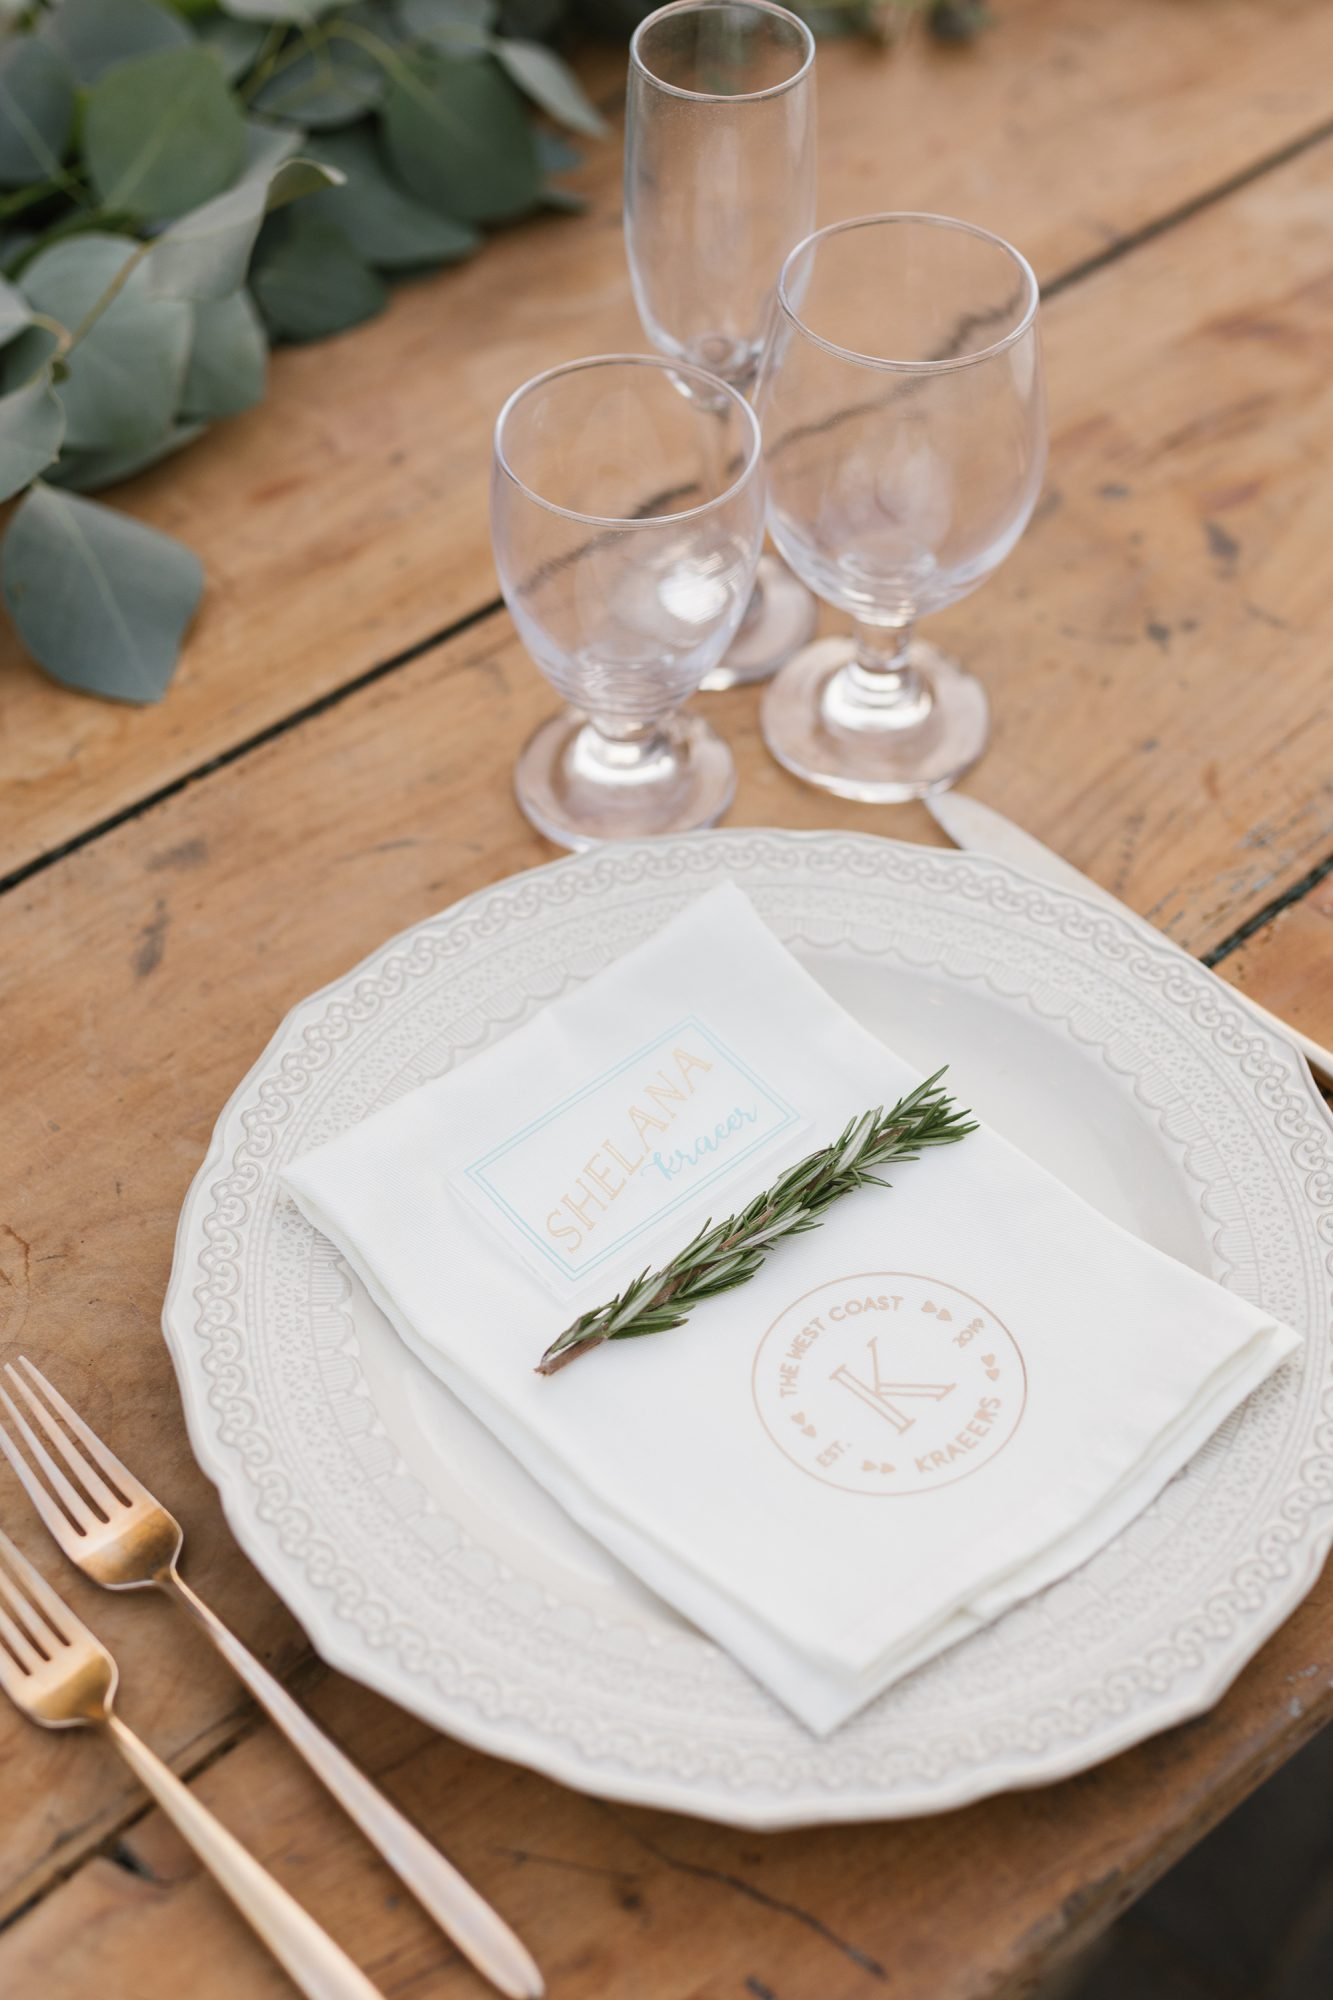 shelana kevin wedding place setting with couple's names